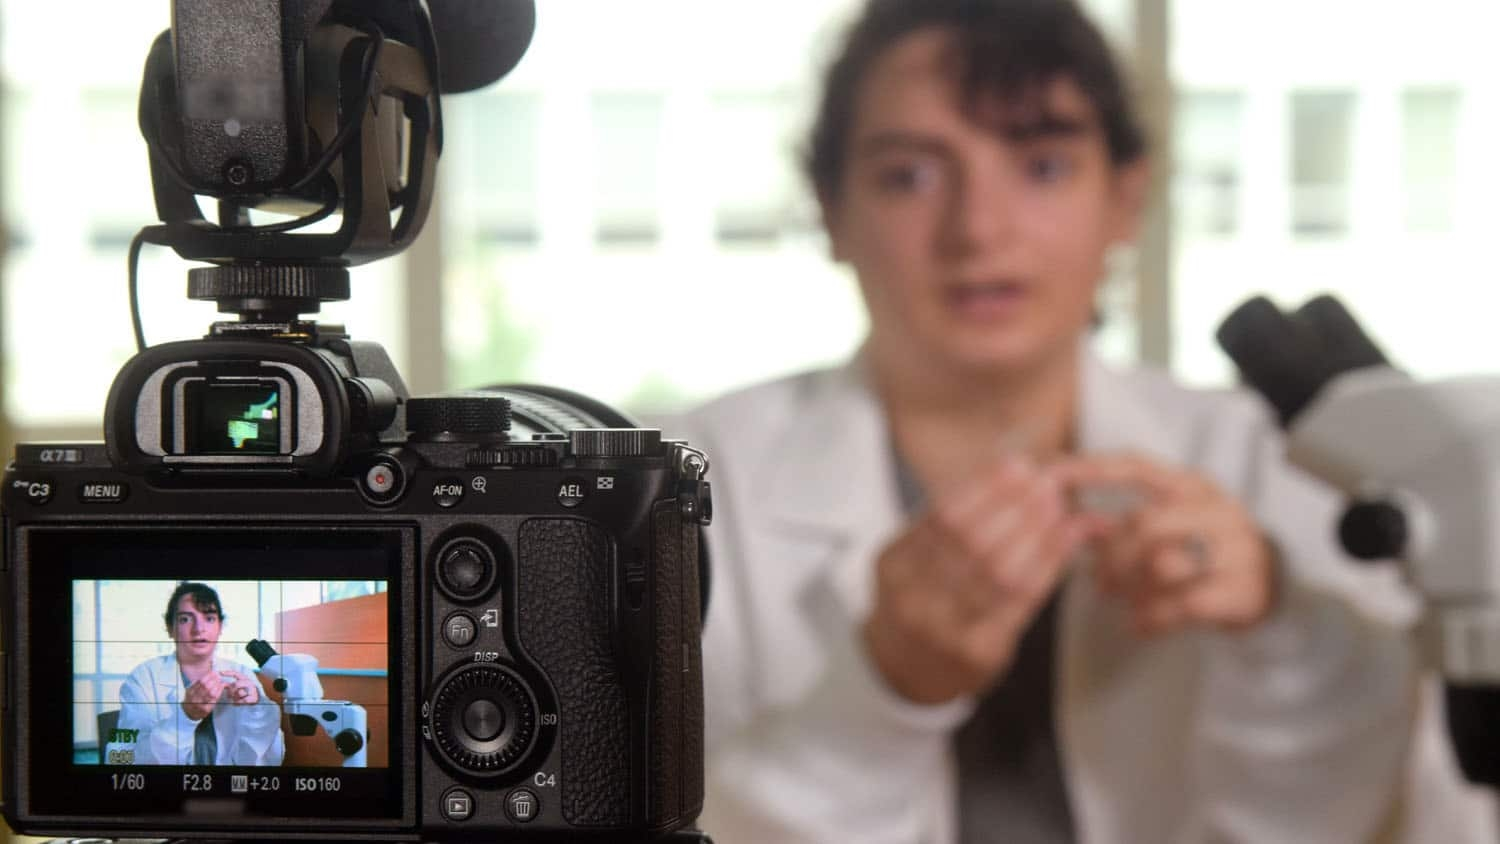 a camera is filming a scientist talking about her work; the scientist is also visible in the viewfinder of the camera